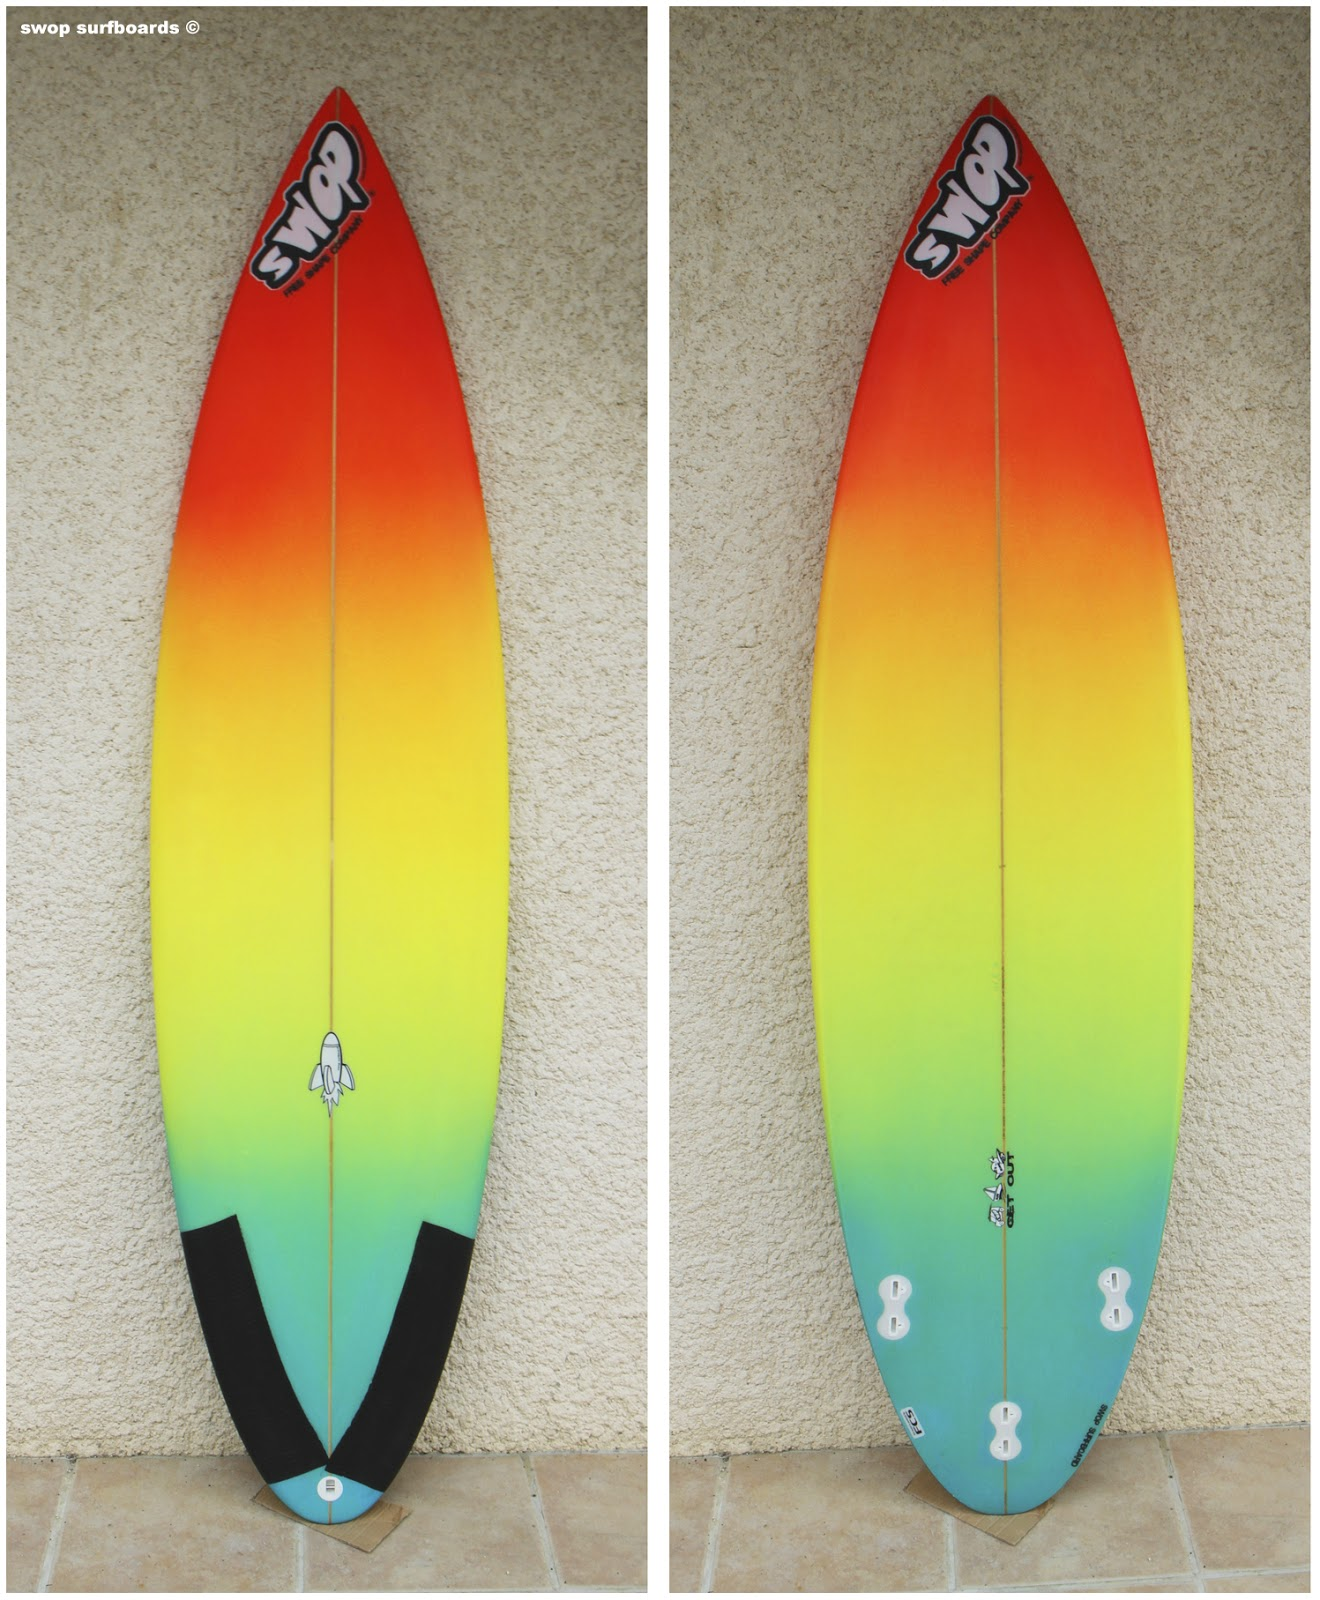 Swop Surfboards Rainbow Shortboard